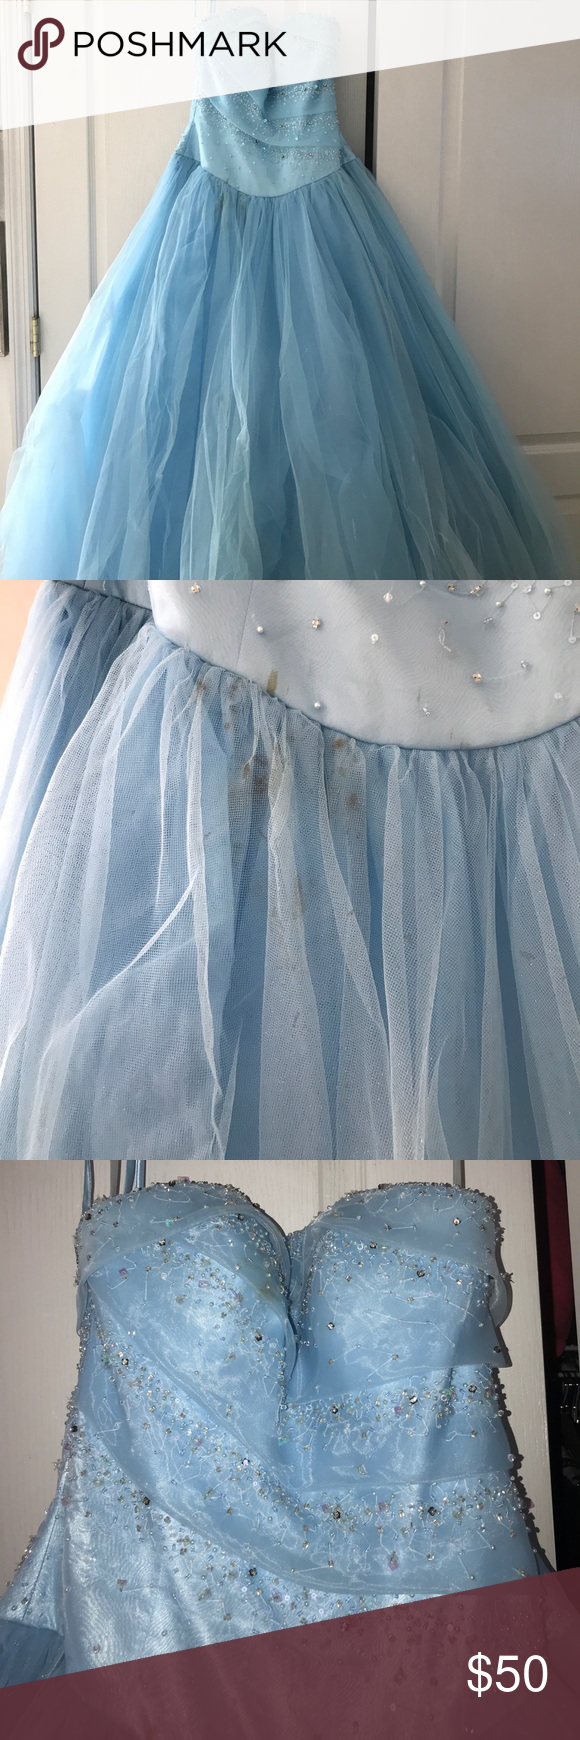 Prom dress cinderella dresses dry cleaning and dress prom